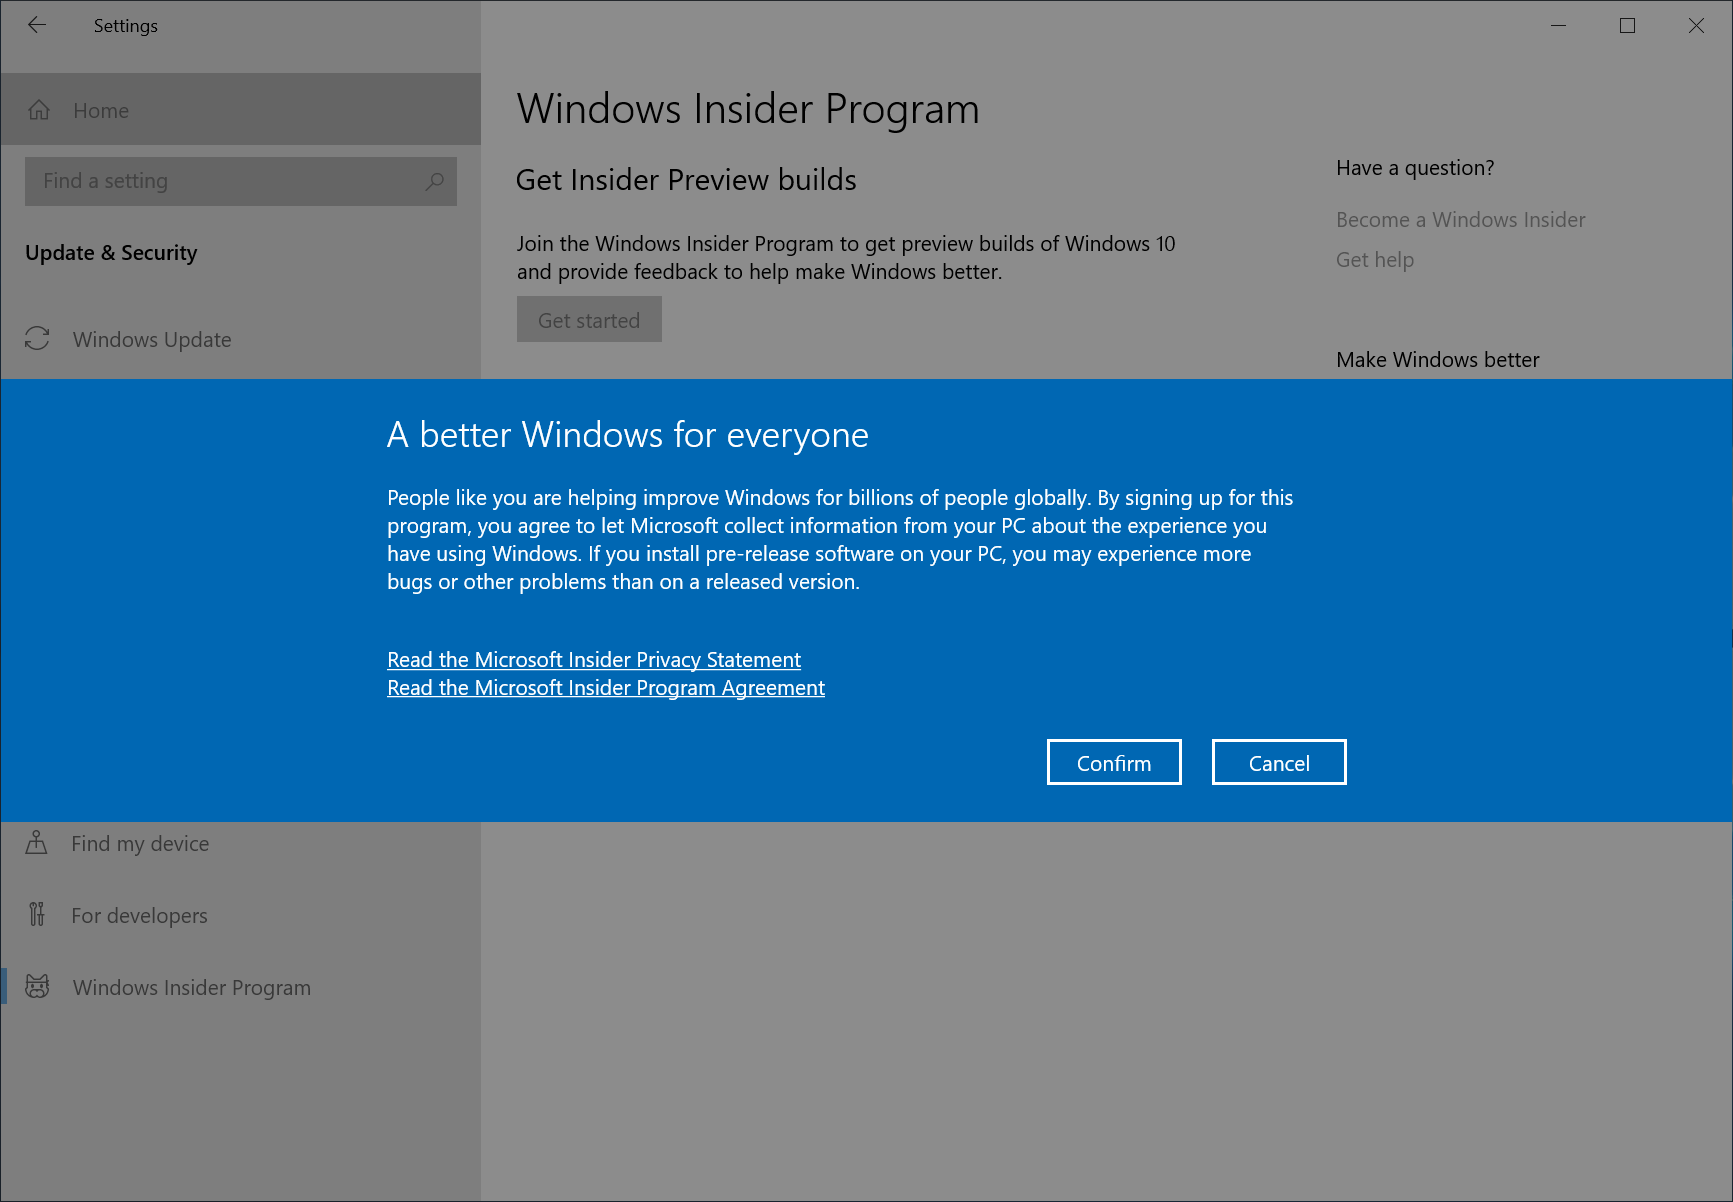 Getting the November 2019 Update Ready for Release  Insider 8cc54b9bc368b29961a9dcf6641c0a68.png